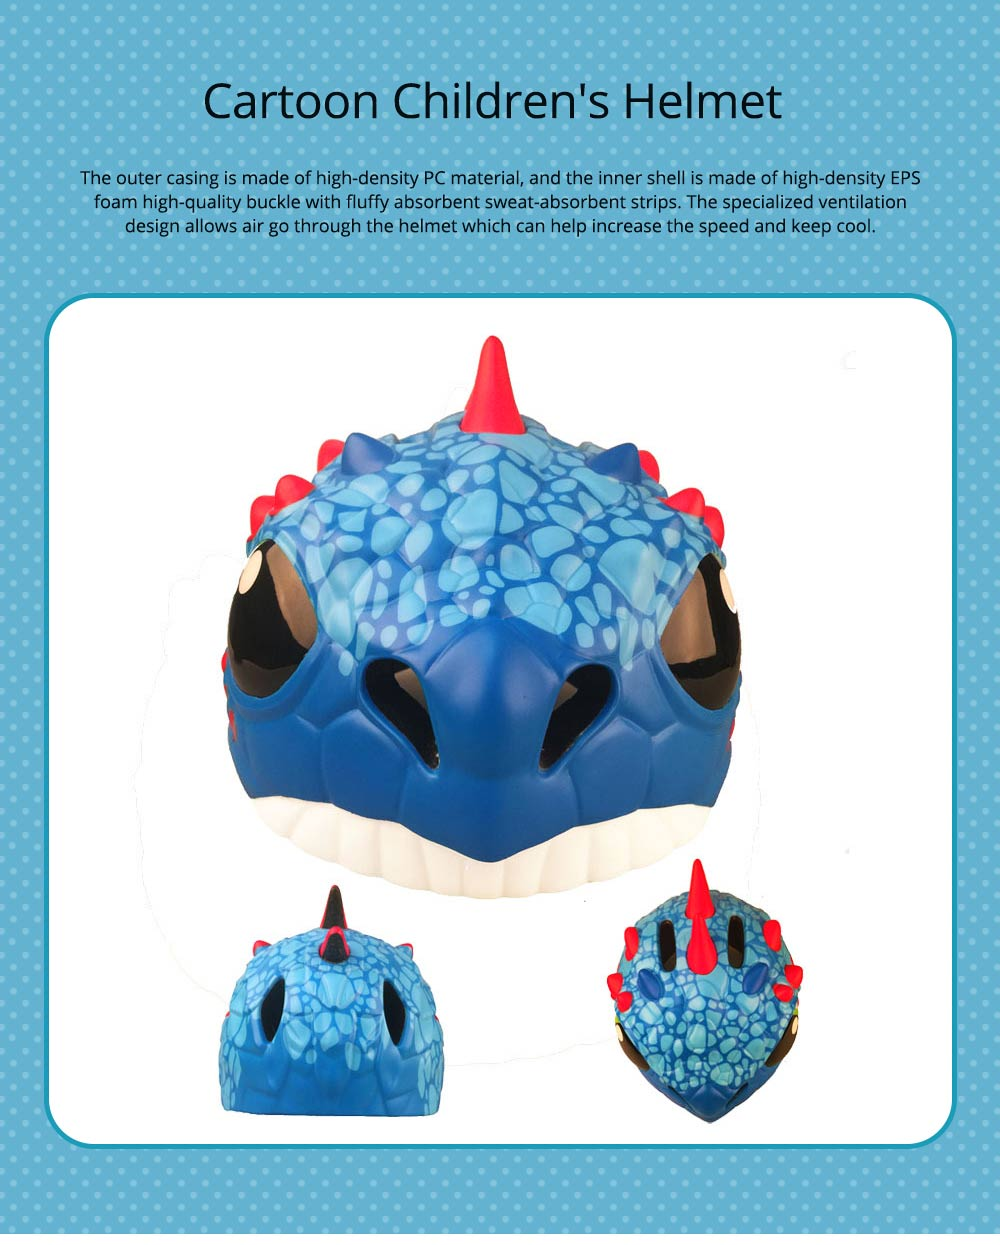 Carton Children's Helmet for Cycling, Sports, Lightweight Safety Protection Cycling Helmet Outdoor Sports Equipment 0